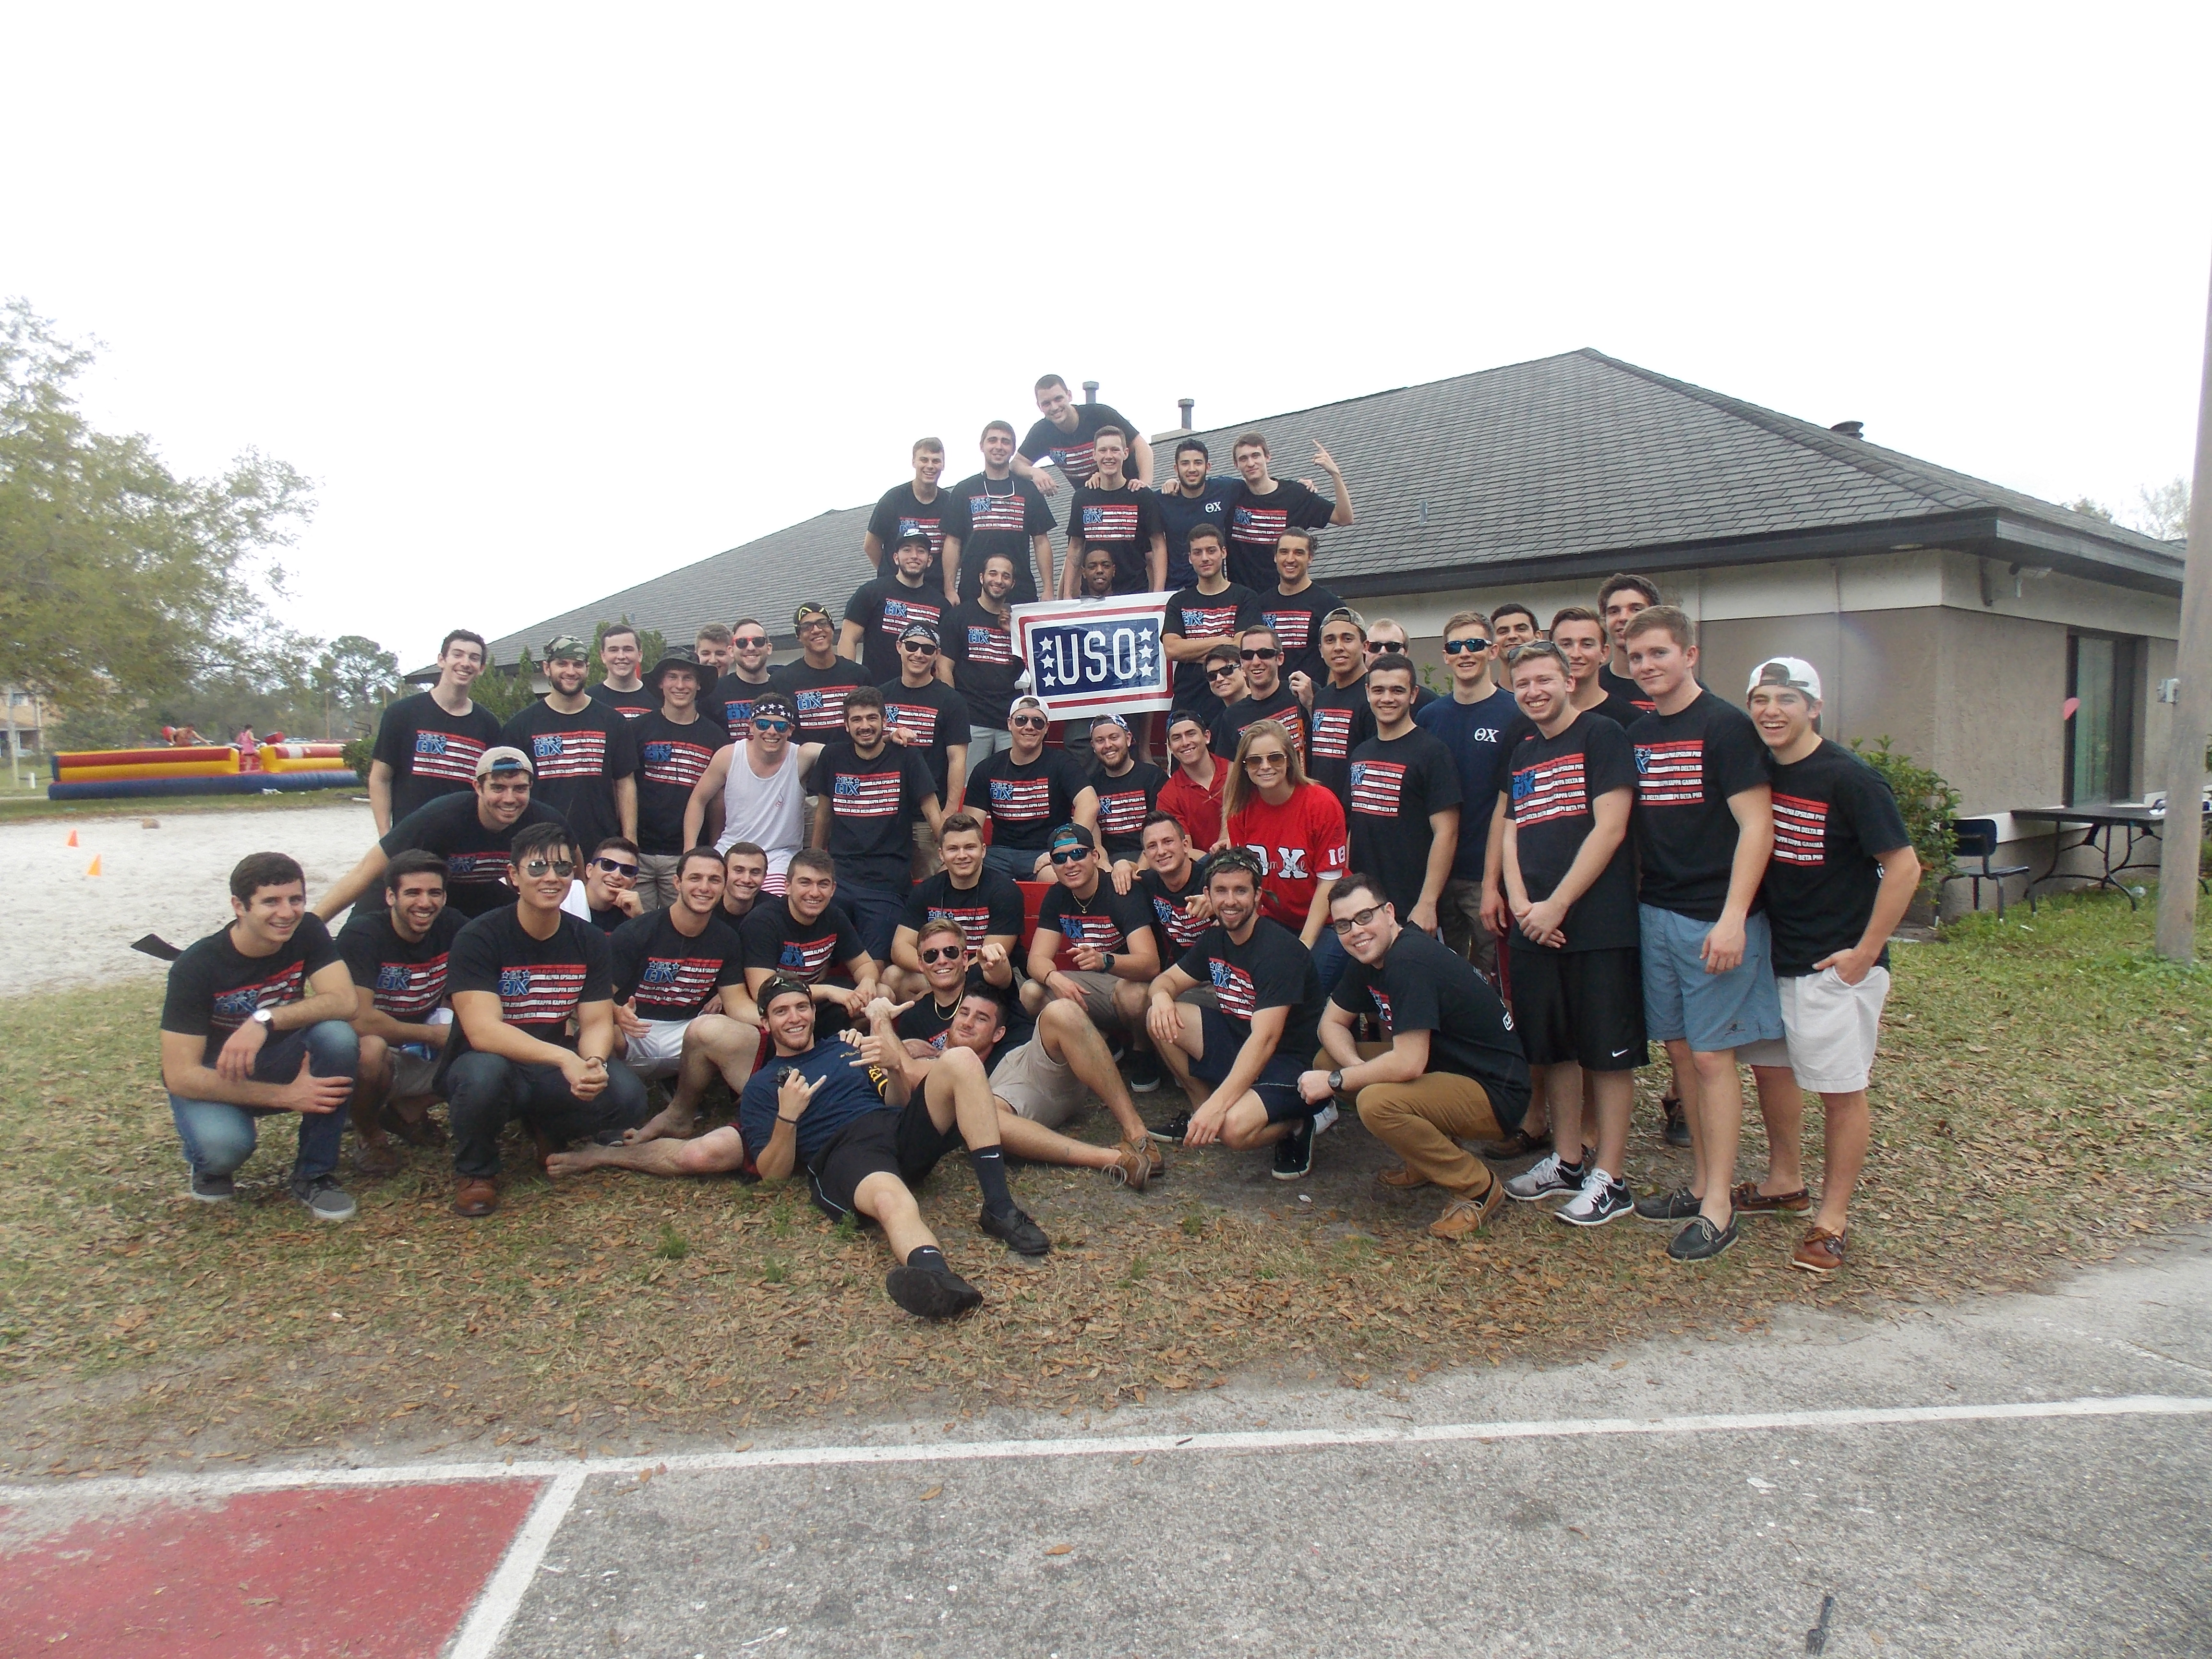 The brothers of Theta Chi — Iota Theta Chapter at the University of Central Florida pose at their 2015 G.I. Theta Chi event.